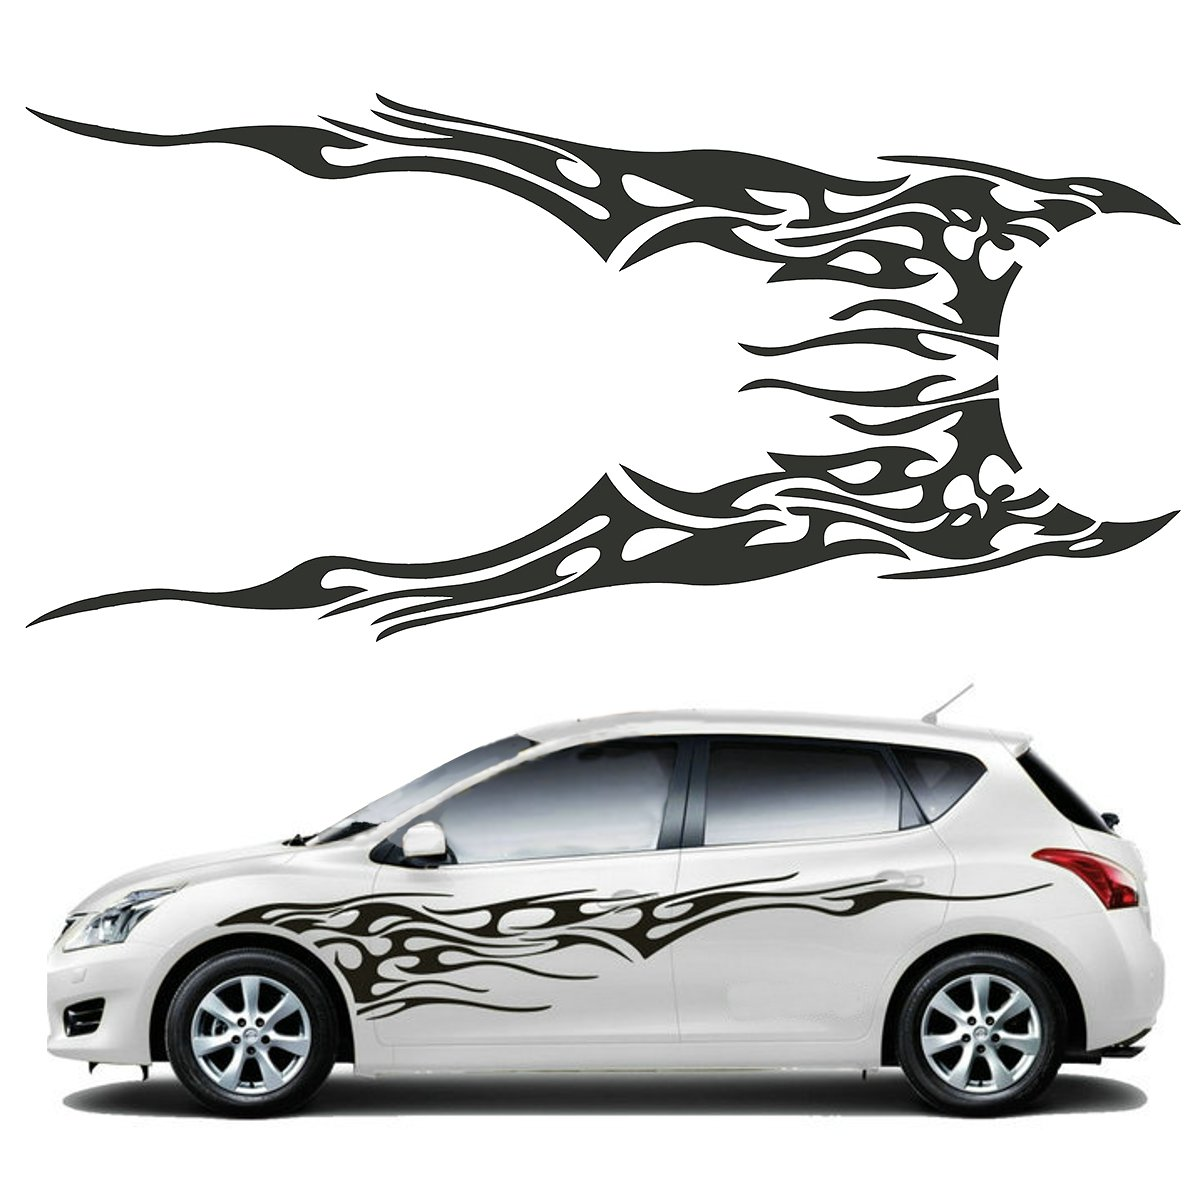 Sticker design for car online - 2x 210 5 X 48cm Black Universal Car Flame Graphics Vinyl Car Side Sticker Decal Waterproof